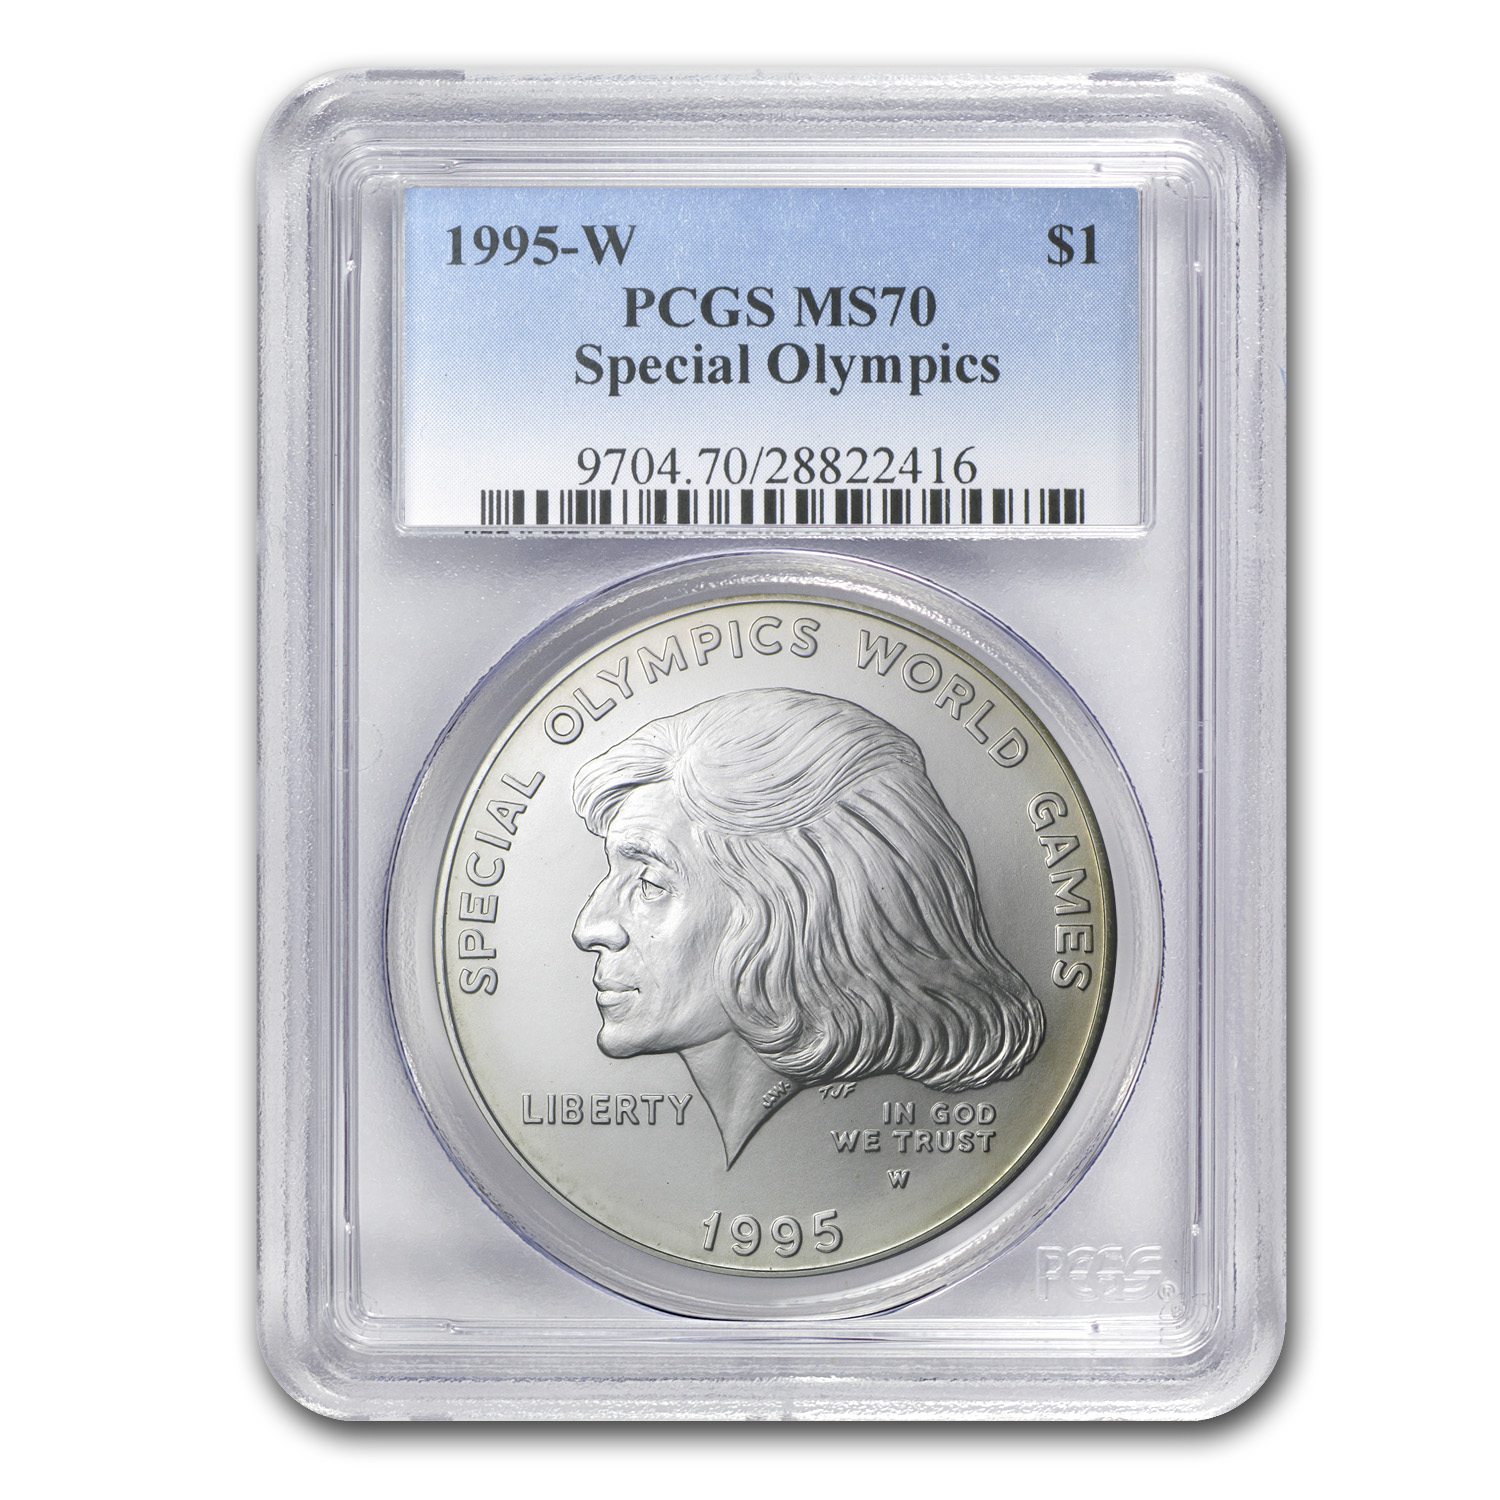 1995-W Special Olympics $1 Silver Commem MS-70 PCGS